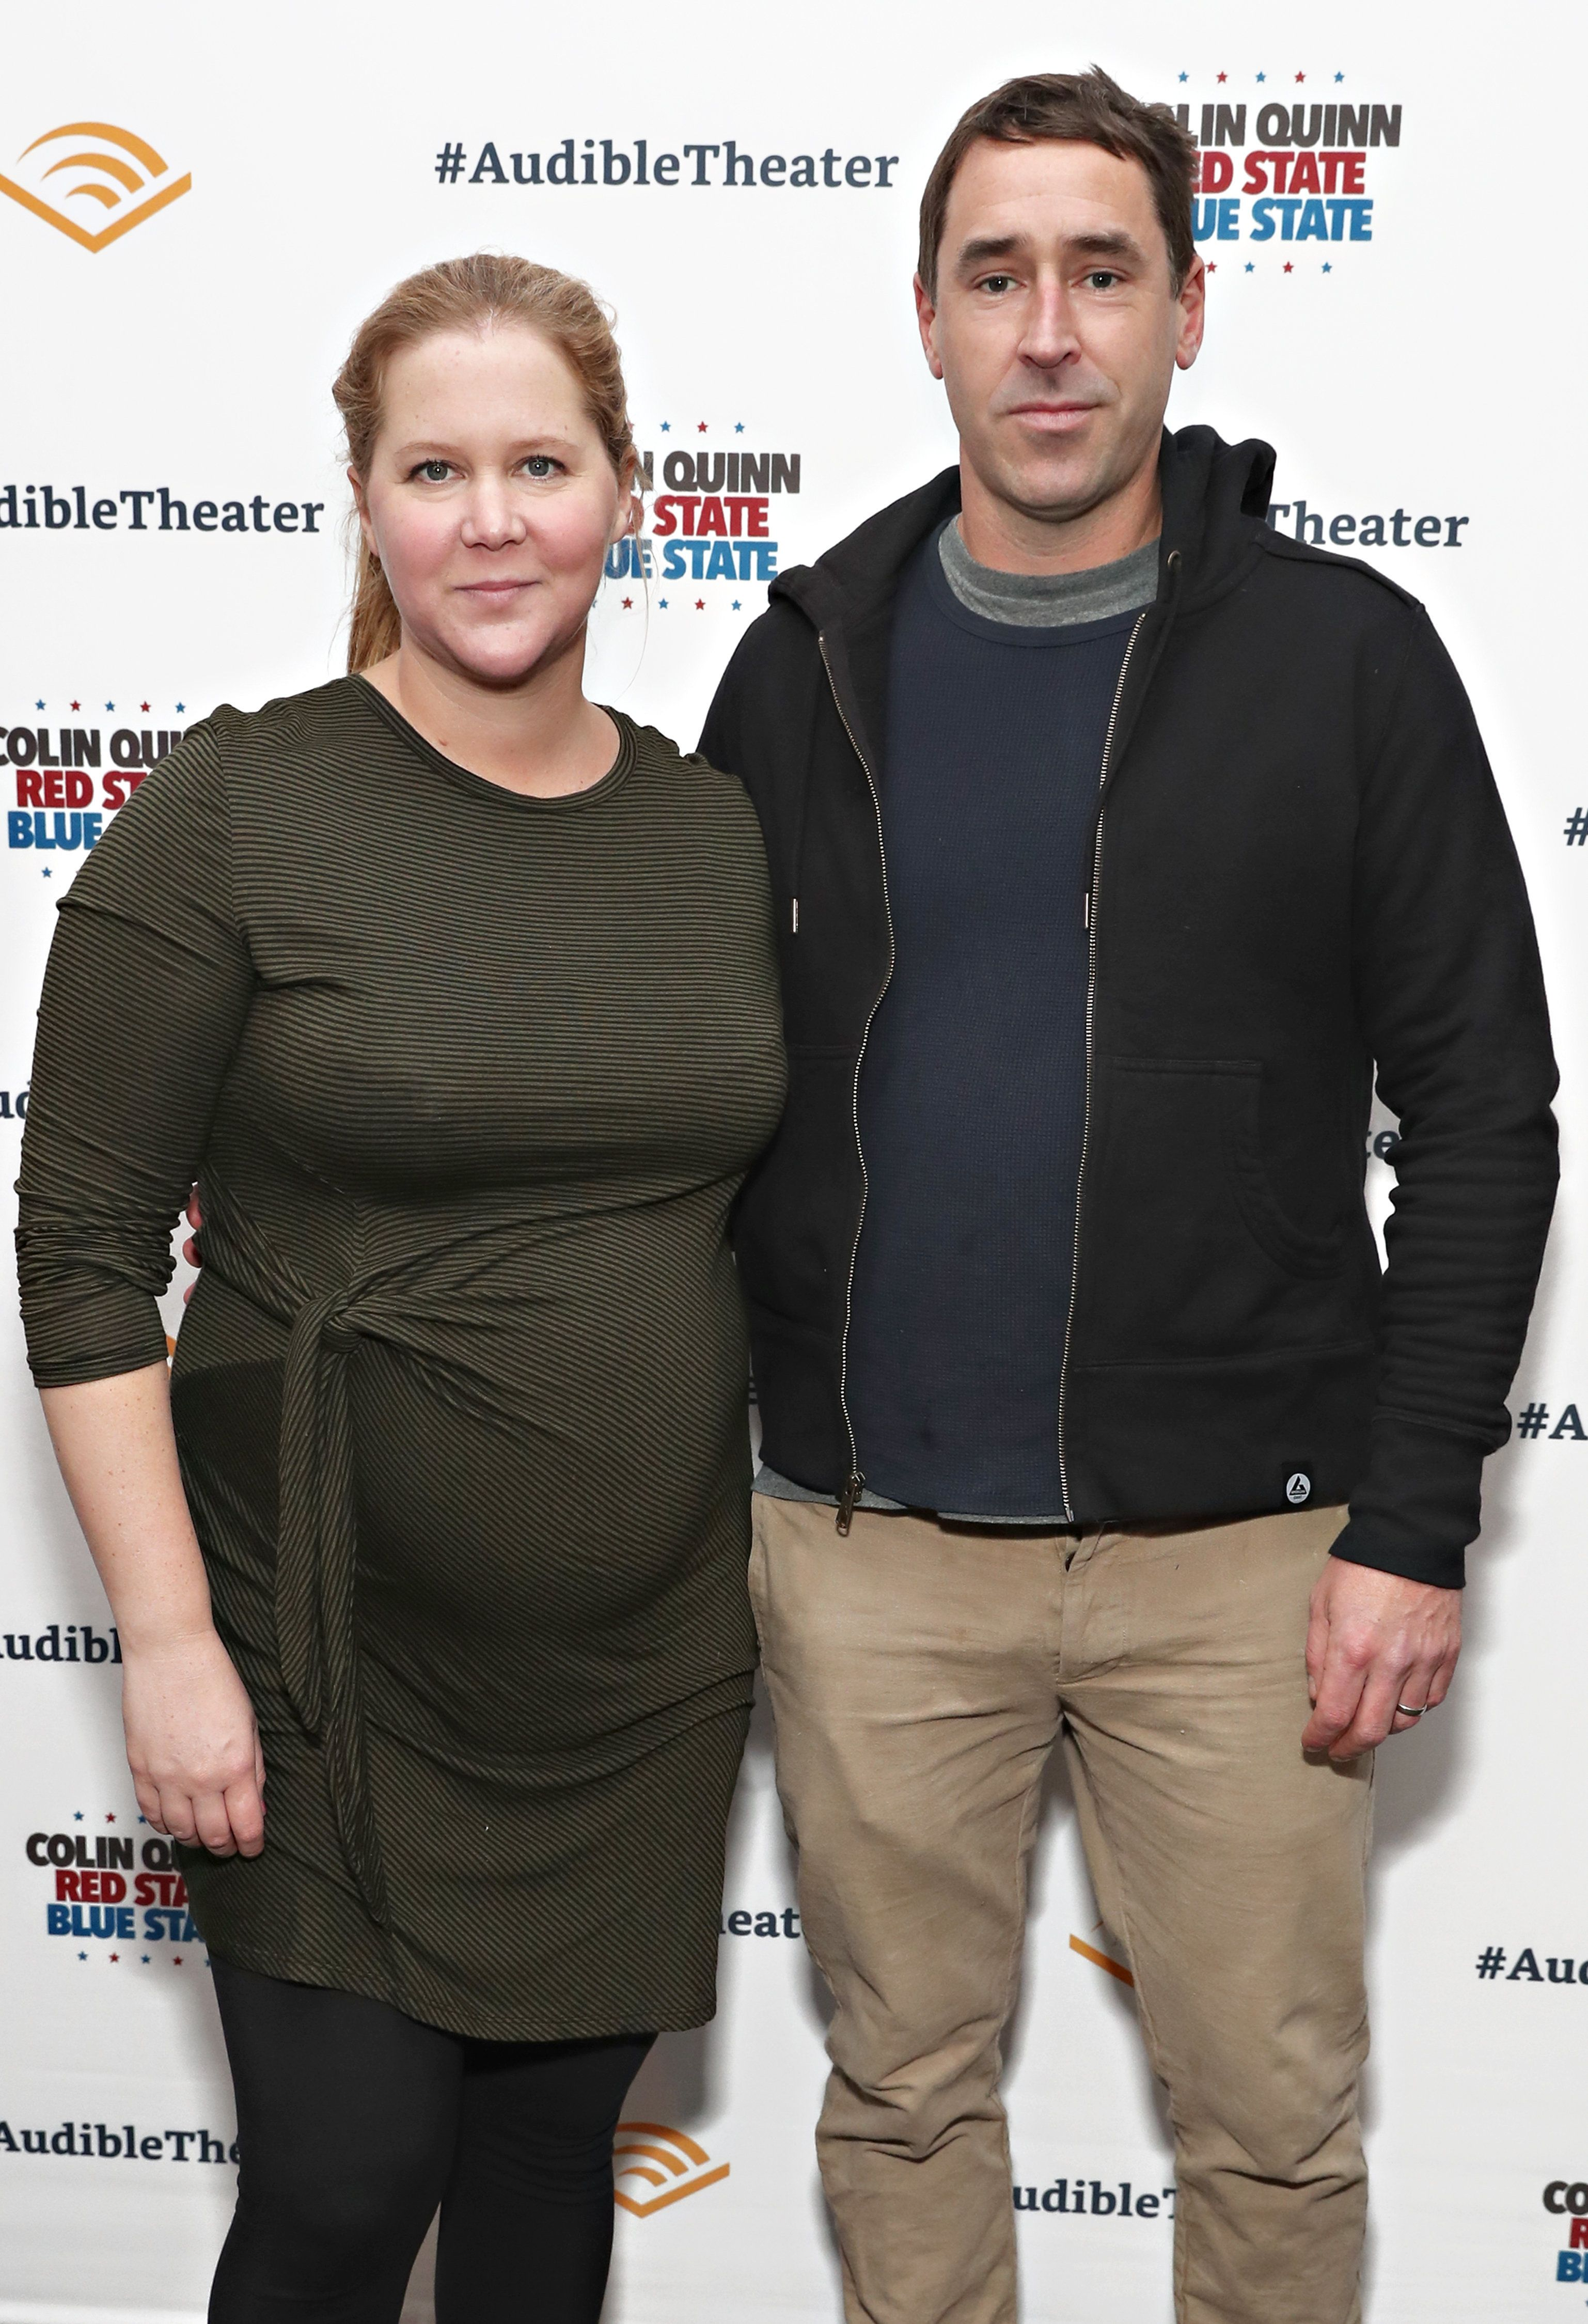 NEW YORK, NY - JANUARY 22:  Amy Schumer and Chris Fischer attend the opening night of 'Colin Quinn: Red State Blue State' at the Minetta Lane Theatre on January 22, 2019 in New York City.  (Photo by Cindy Ord/Getty Images for Red State Blue State)